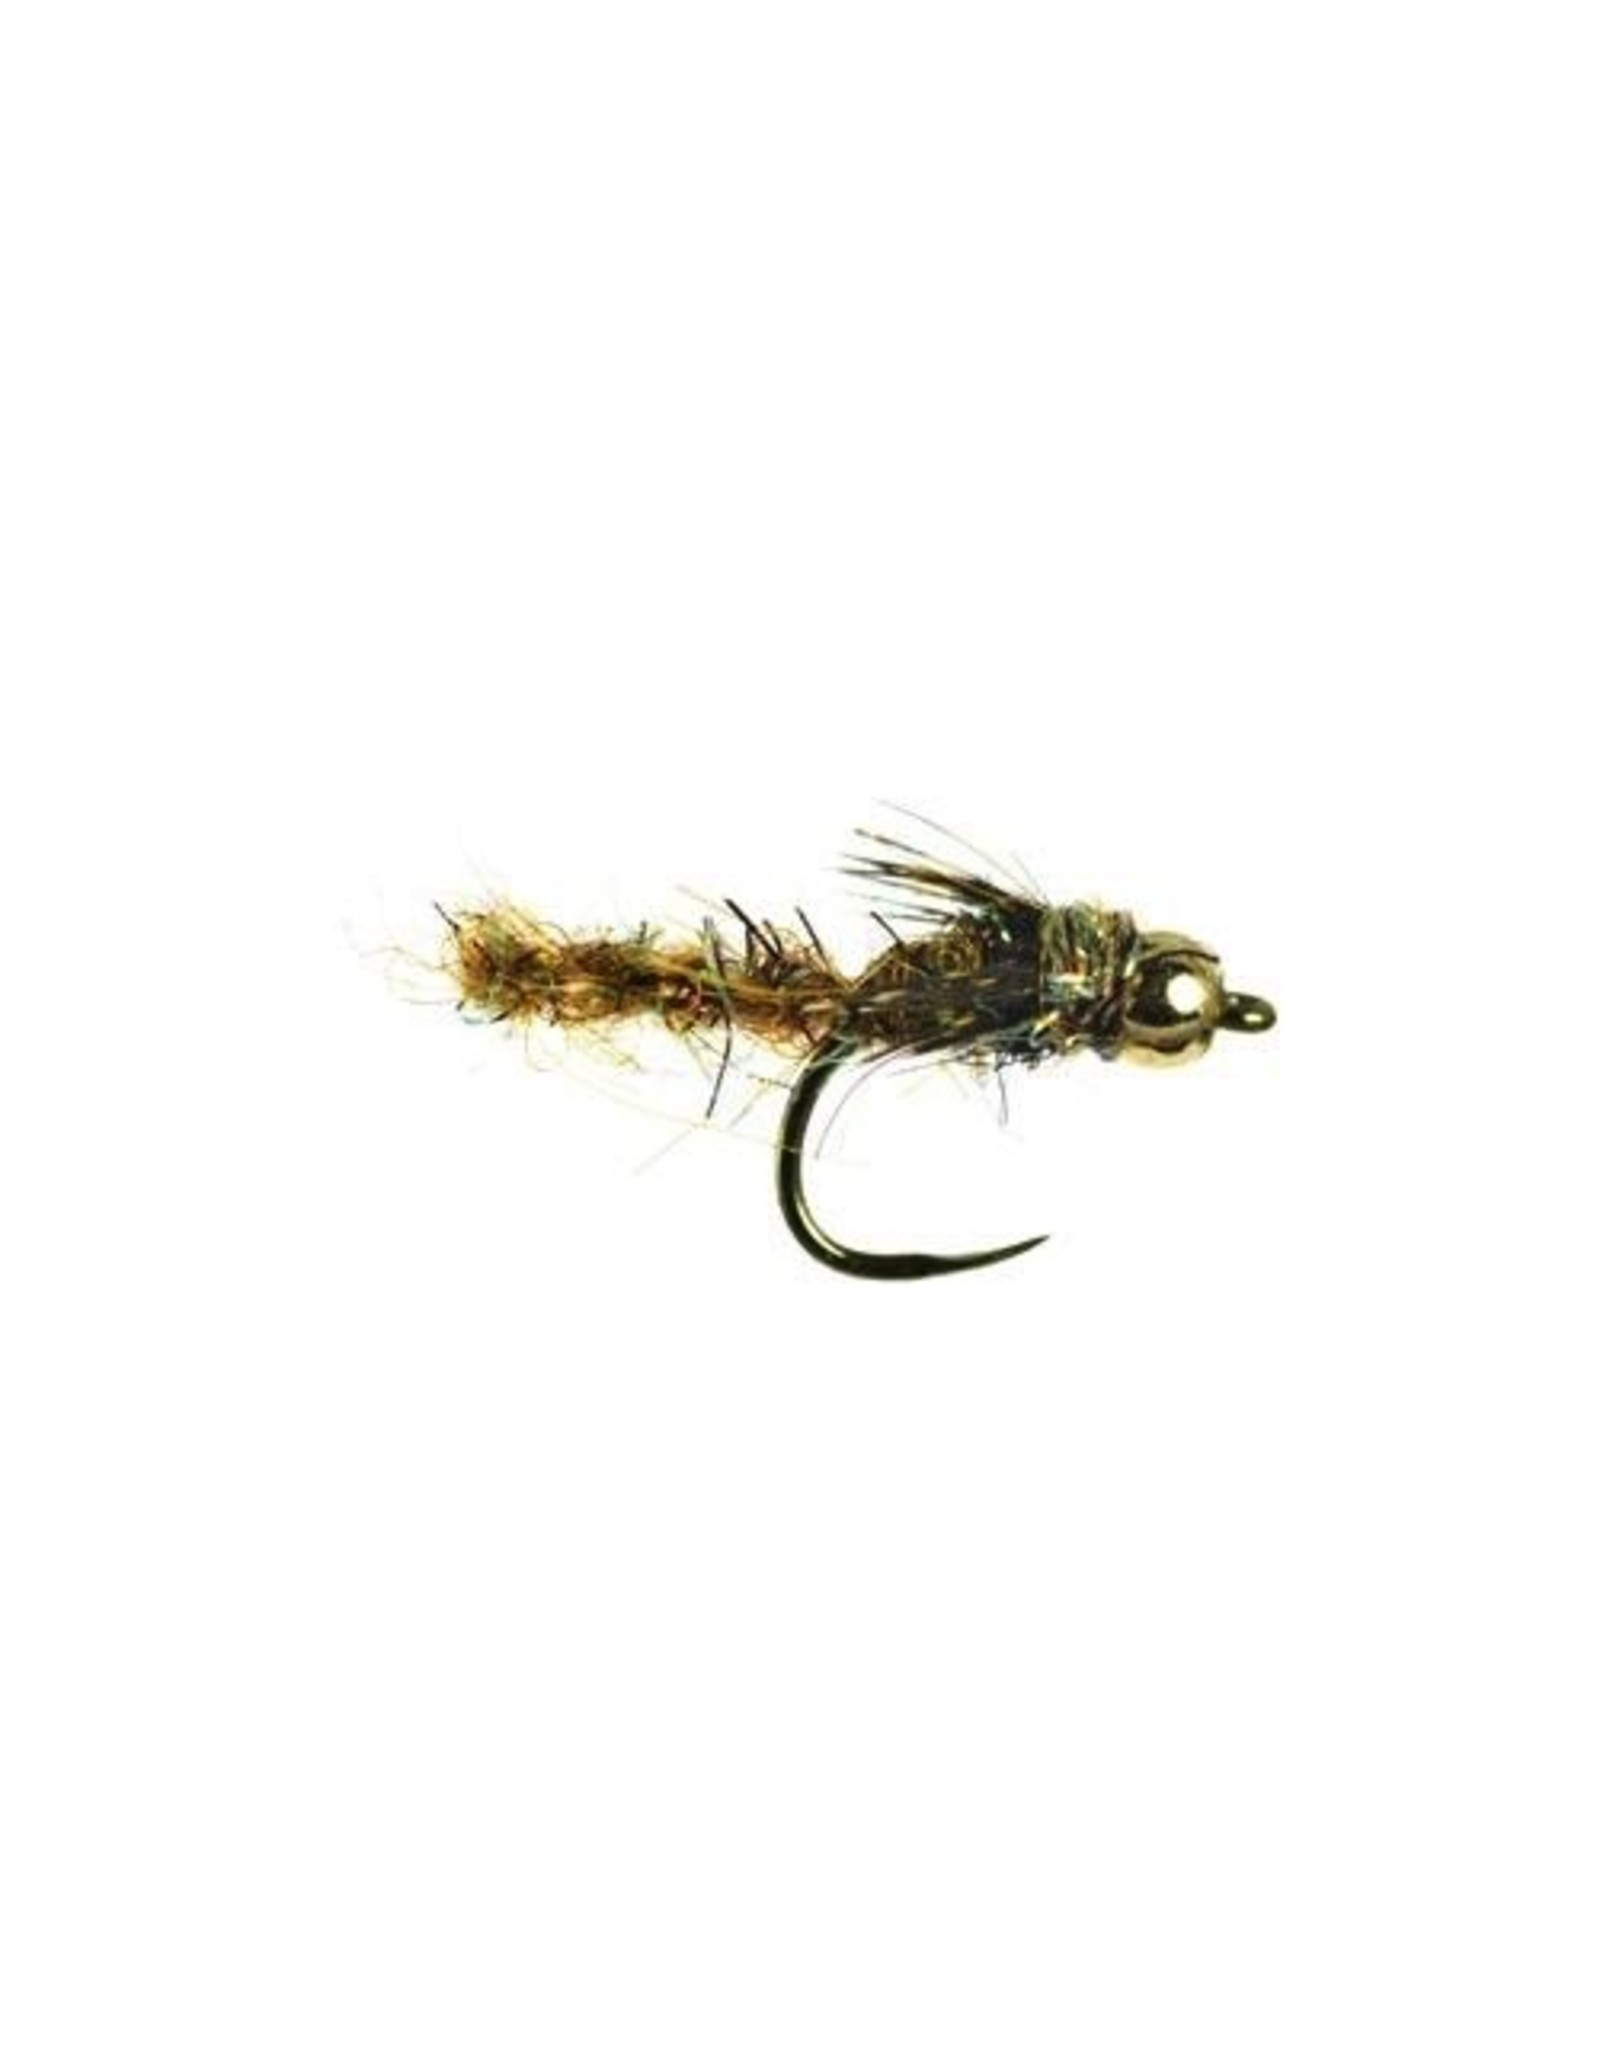 Umpqua Mercer's Twisto Caddis Pupa (3 Pack)